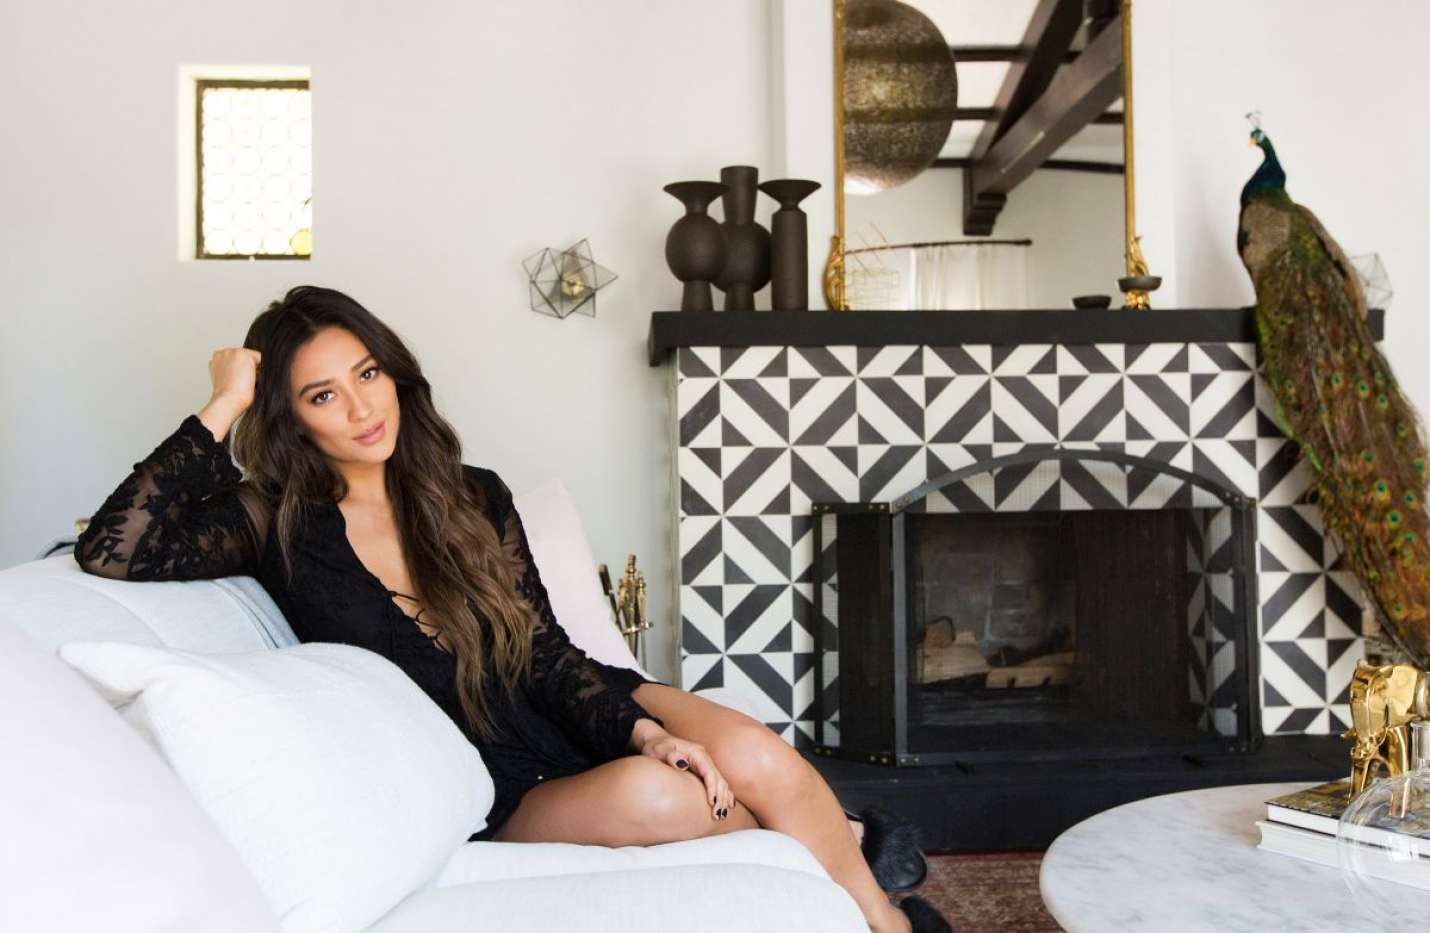 WHAT CELEBRITIES ARE WEARING AT HOME